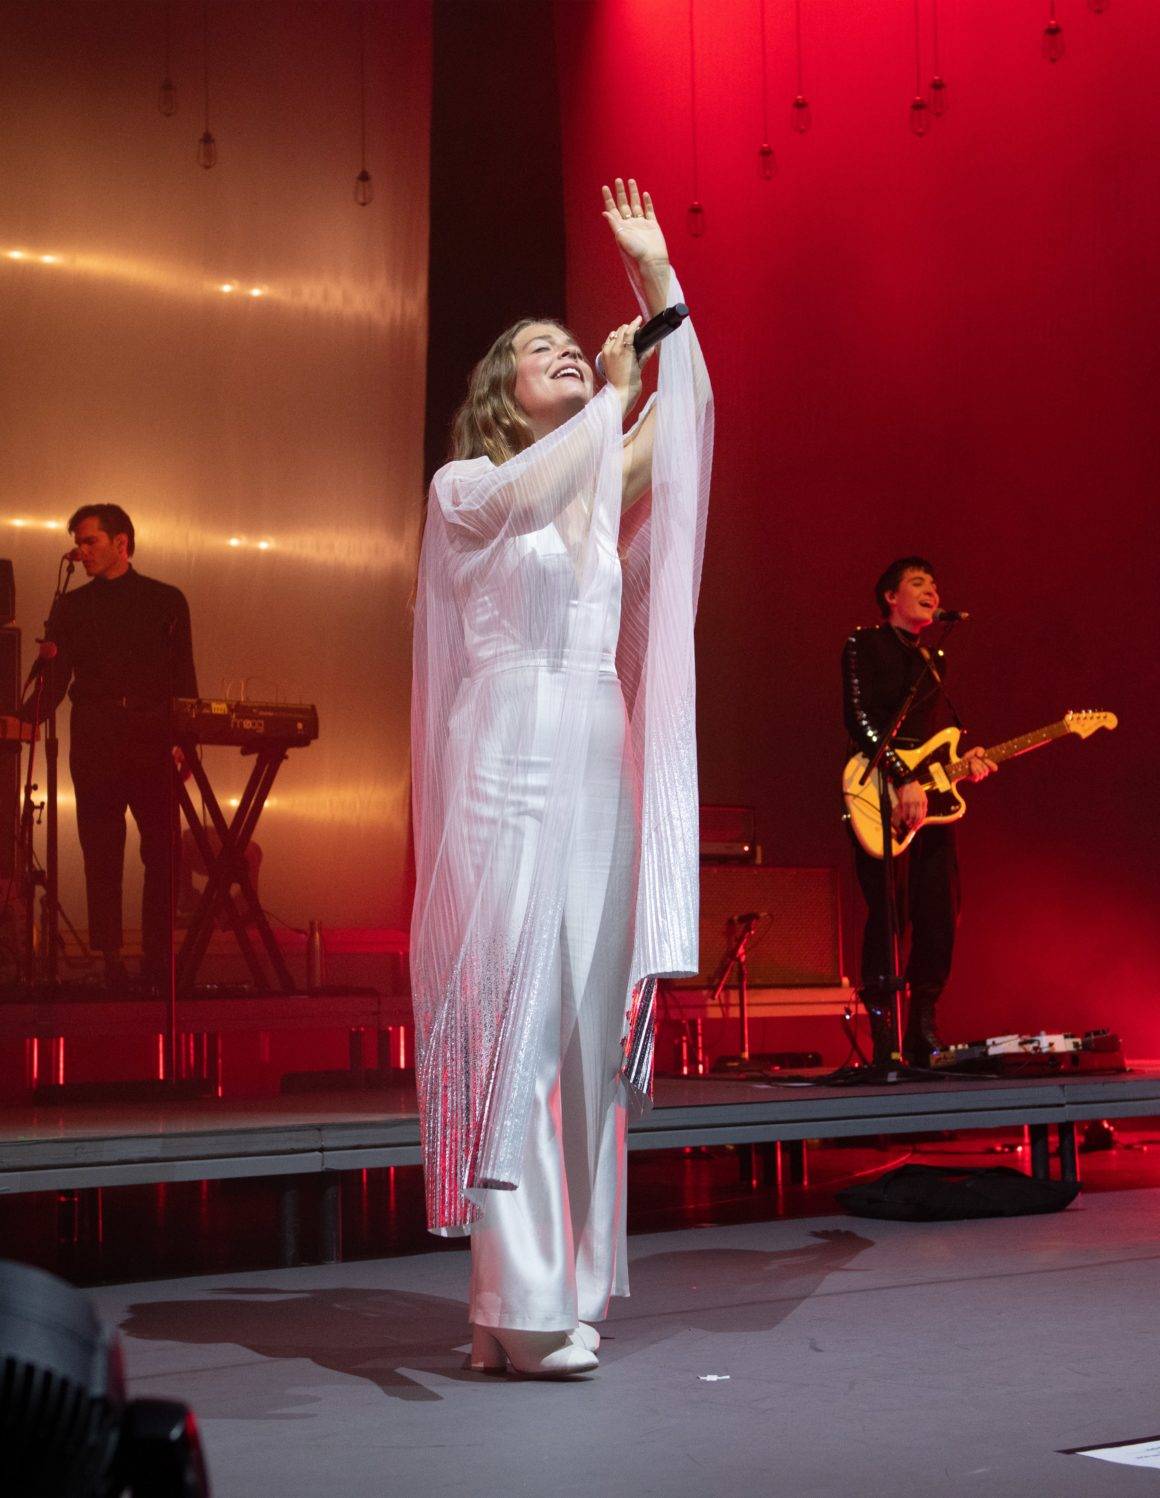 Maggie Rogers With Empress Of In Concert - New York, NY